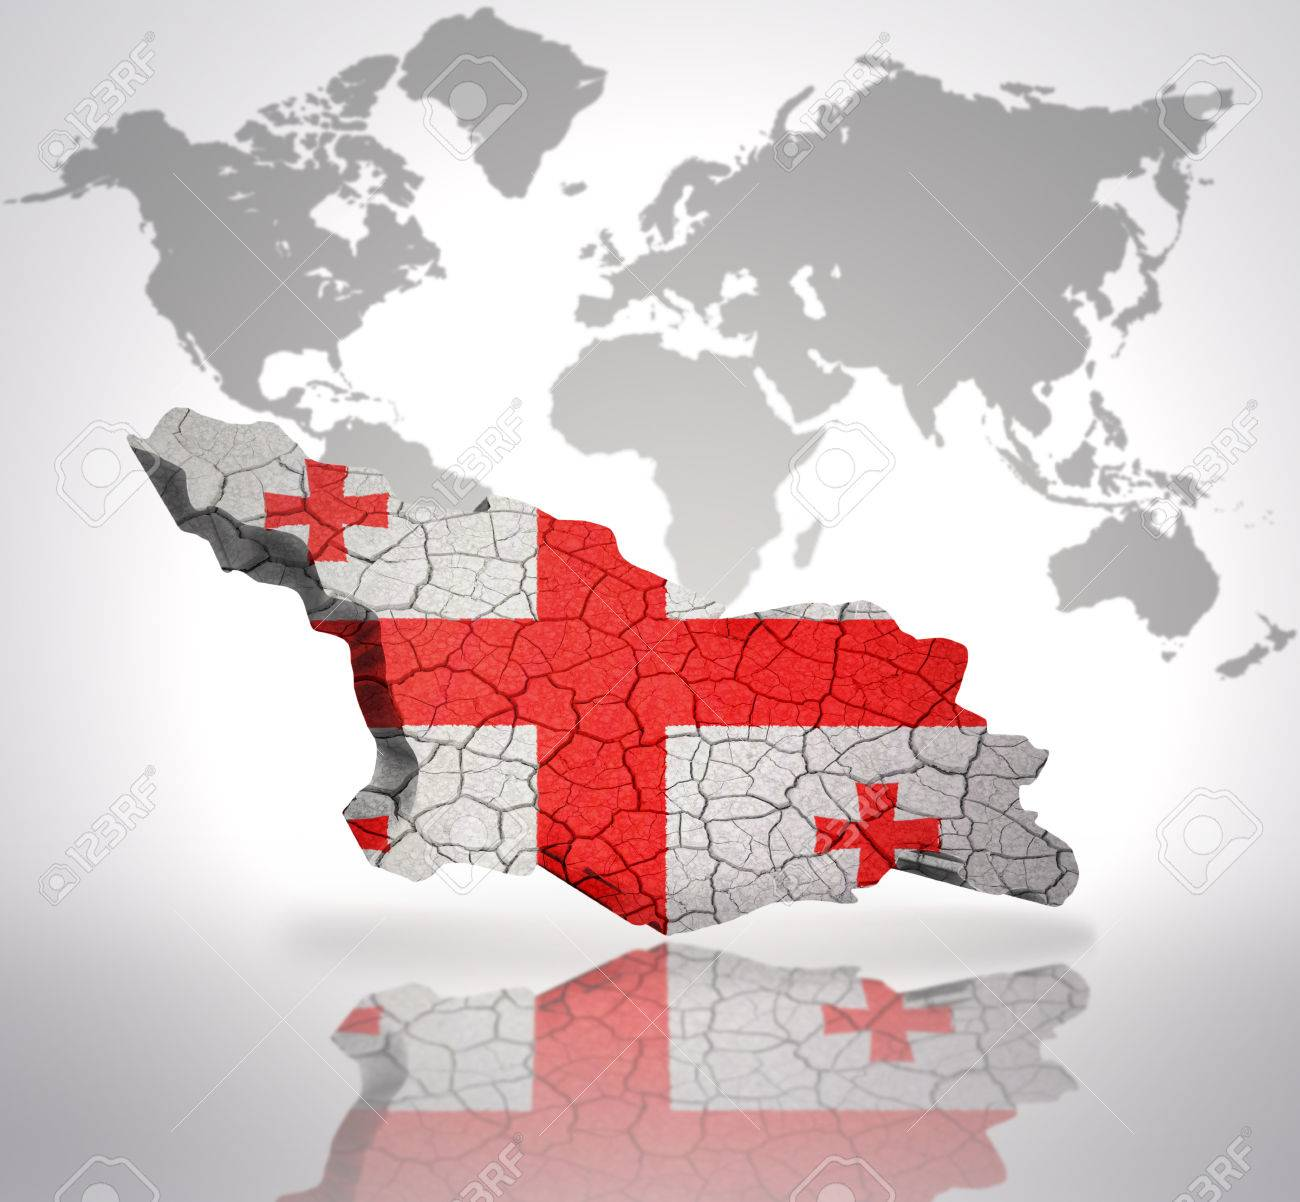 Map of georgia with georgian flag on a world map background stock map of georgia with georgian flag on a world map background stock photo 32714950 gumiabroncs Choice Image